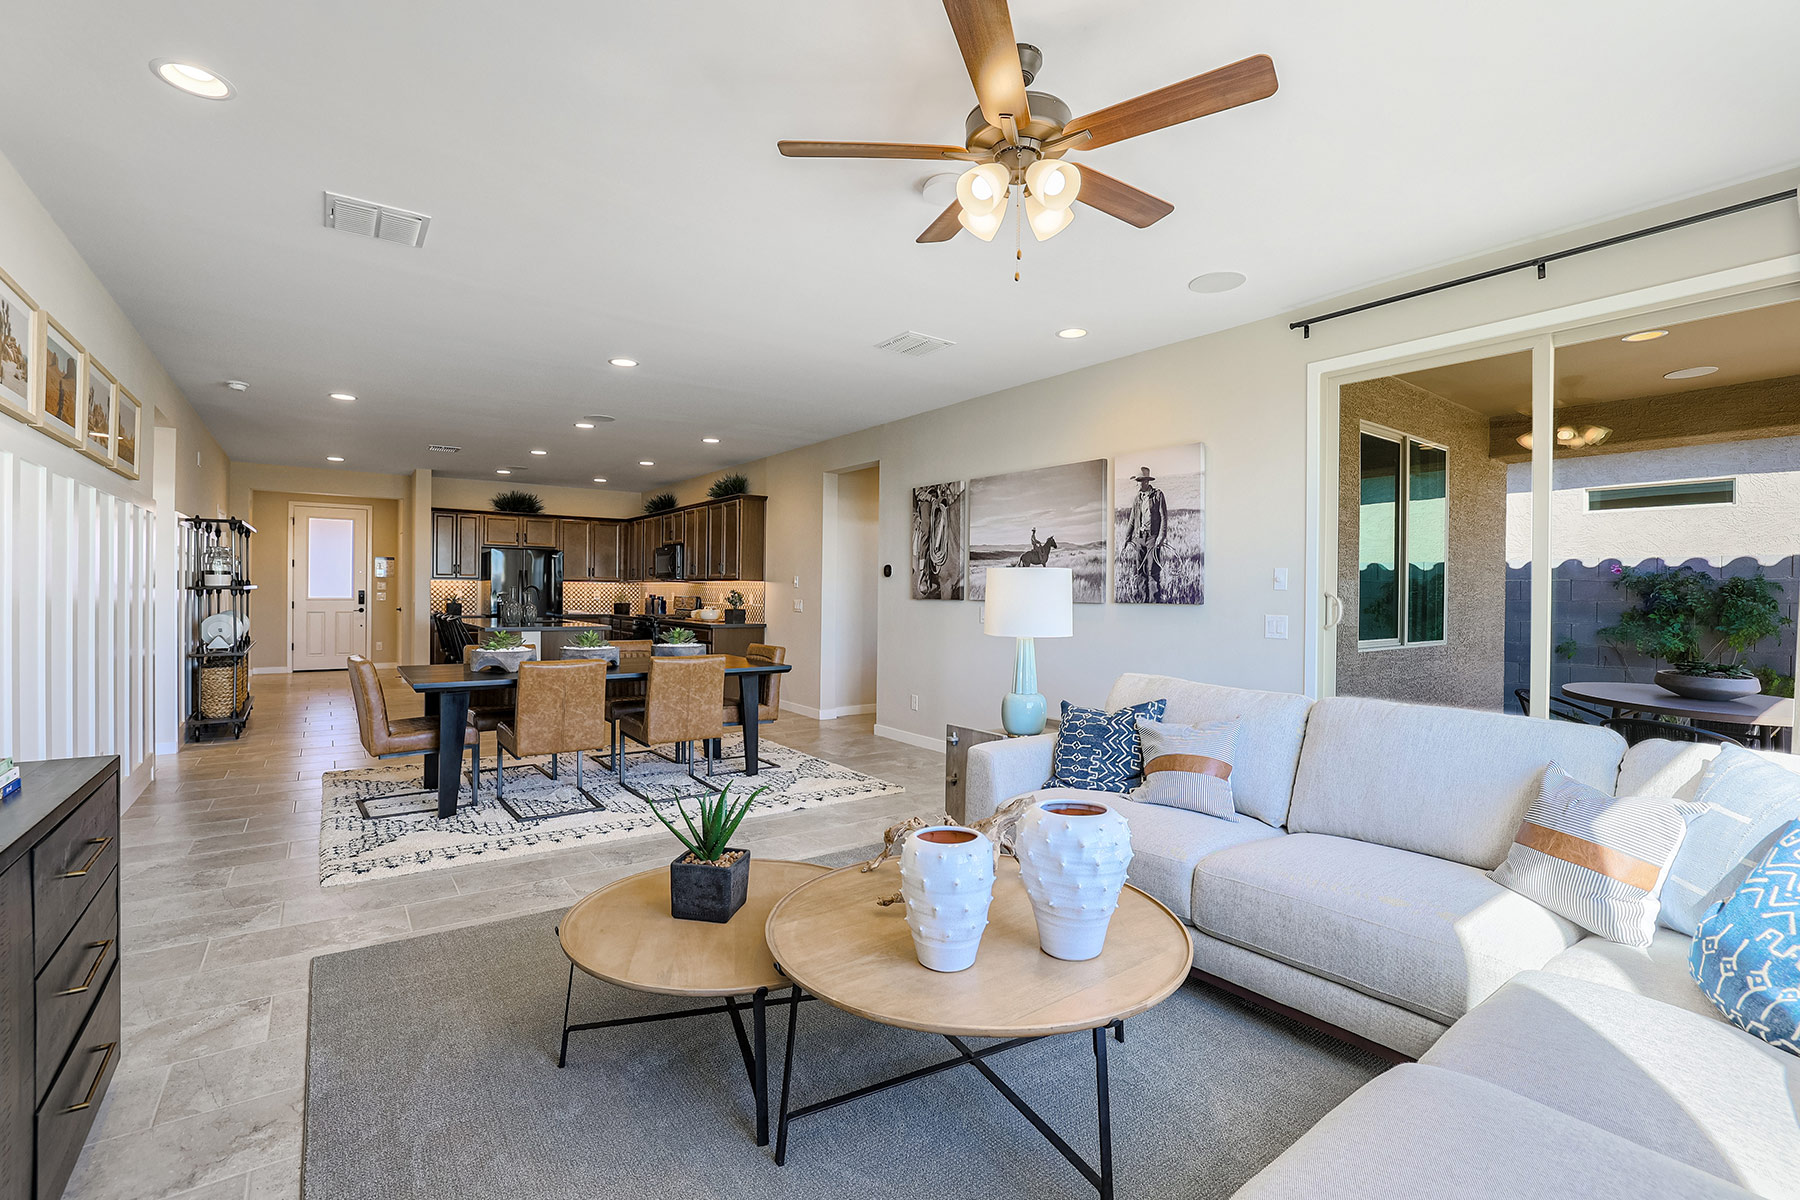 Aries Plan MATPHX_AZC_Aries_GR_Dining_Kitchen_1800x1200 at Azure Canyon in Litchfield Park Arizona by Mattamy Homes